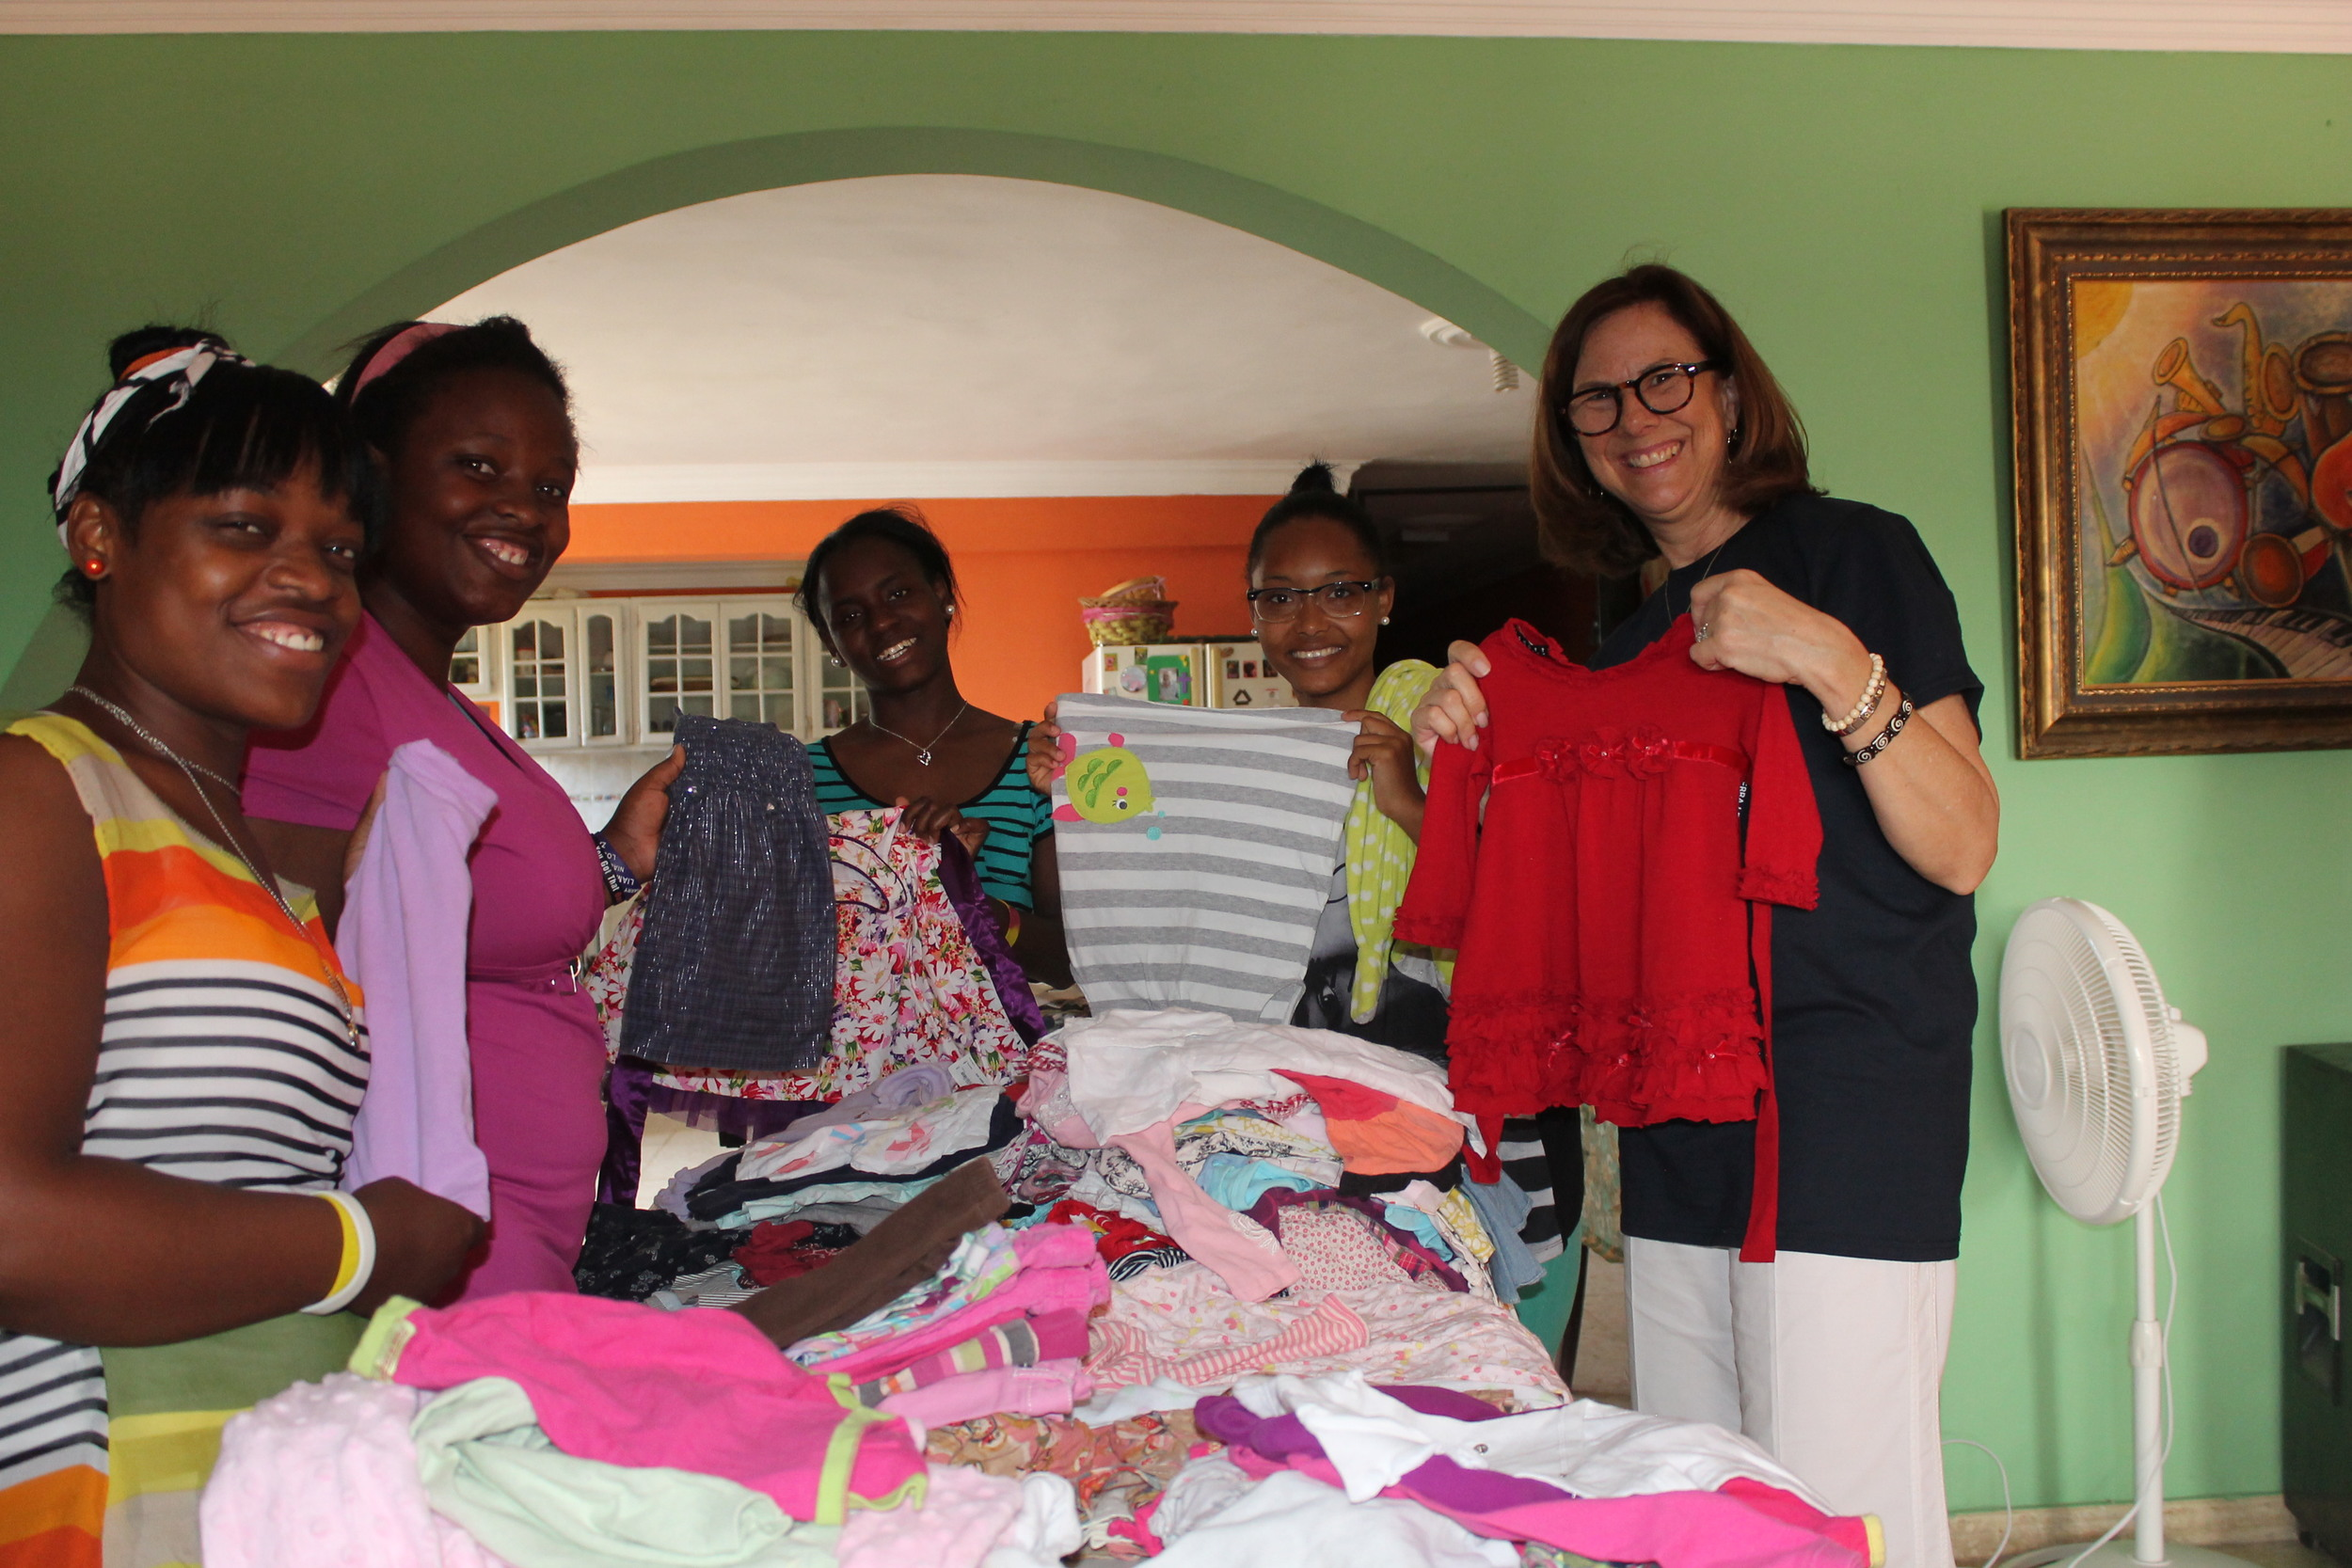 Sorting the beautiful baby clothes